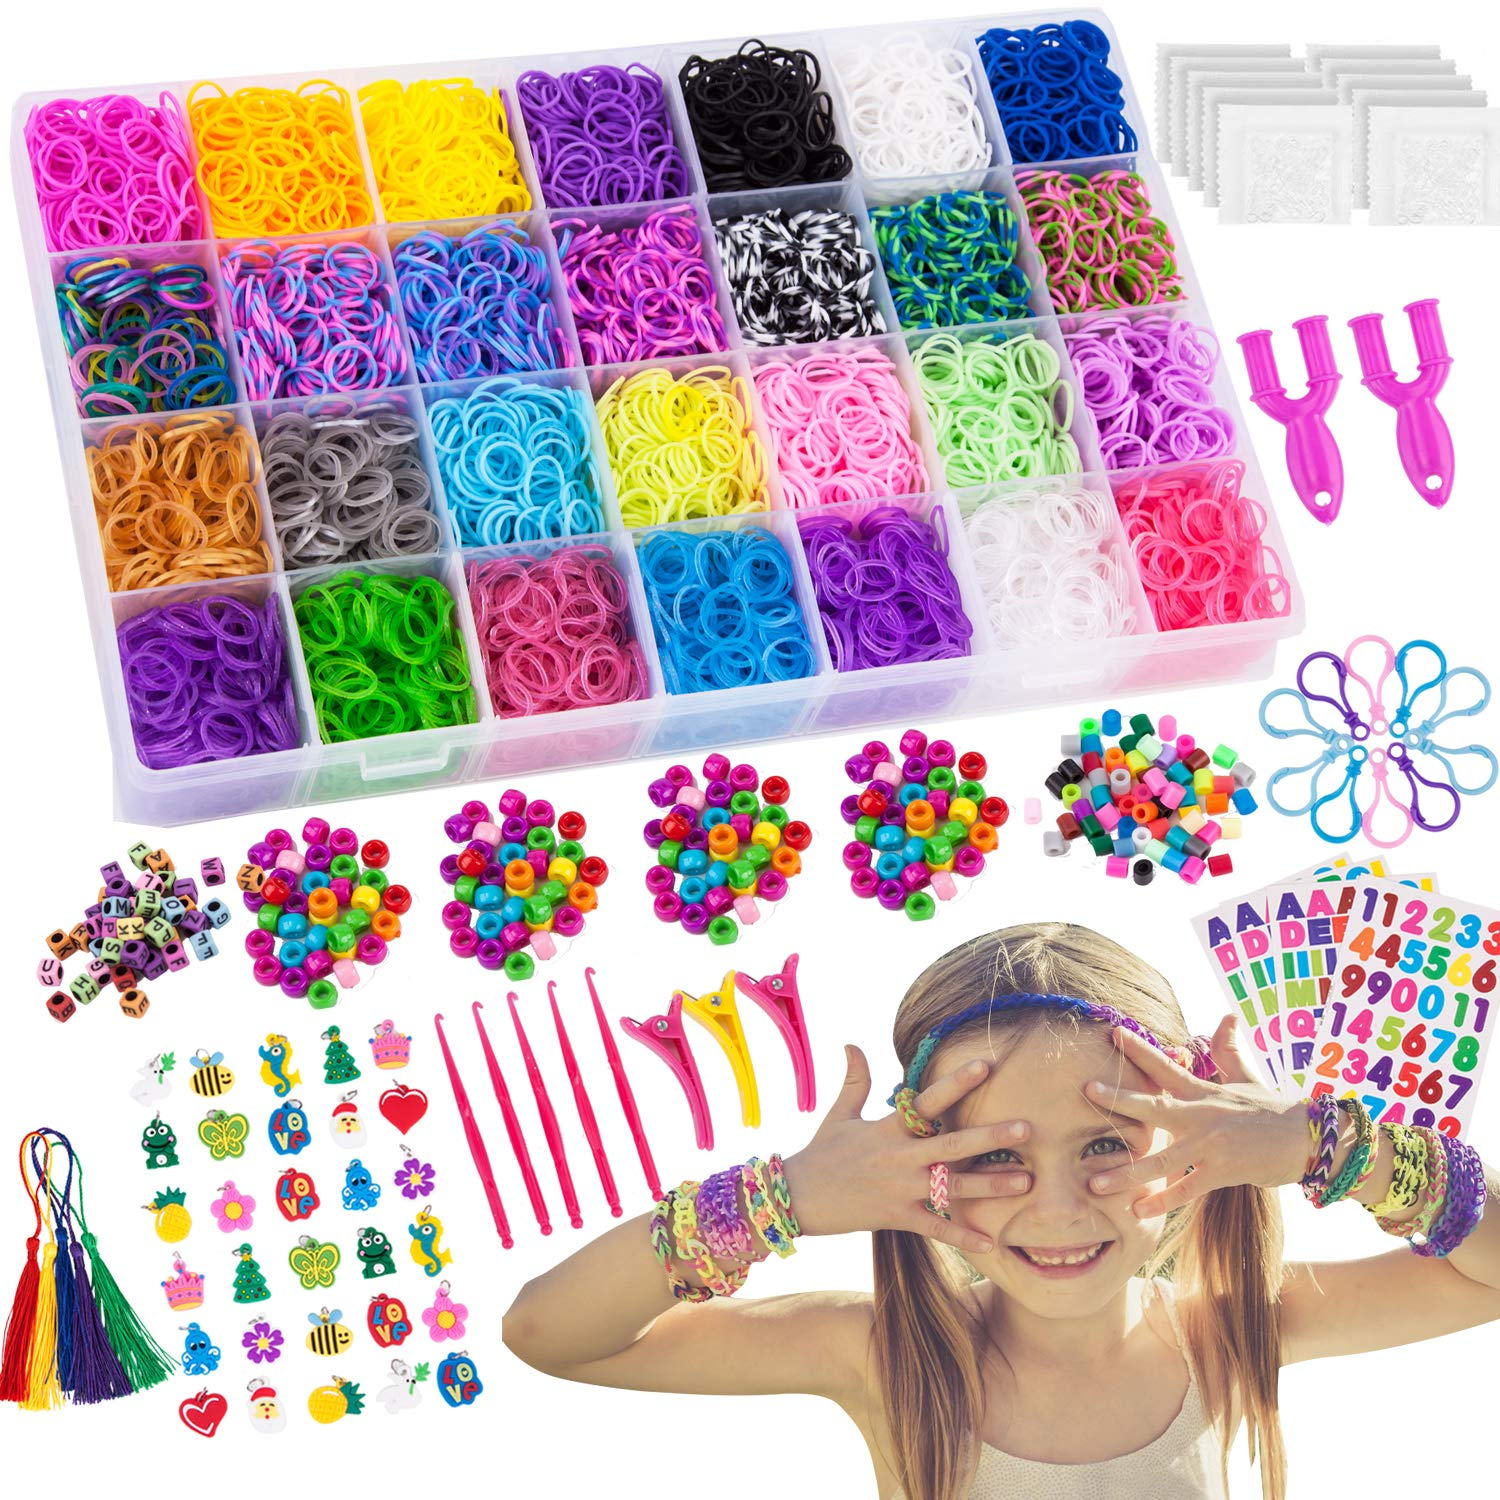 200 Beads + 52 ABC Beads to Personalize your bracelet Organizer 600 Clips 10 Backpack Hooks 24 Charms 11,750+ Rainbow Rubber Bands Refill Set Includes: 10,750 Premium Loom Bands 42 Unique Colors